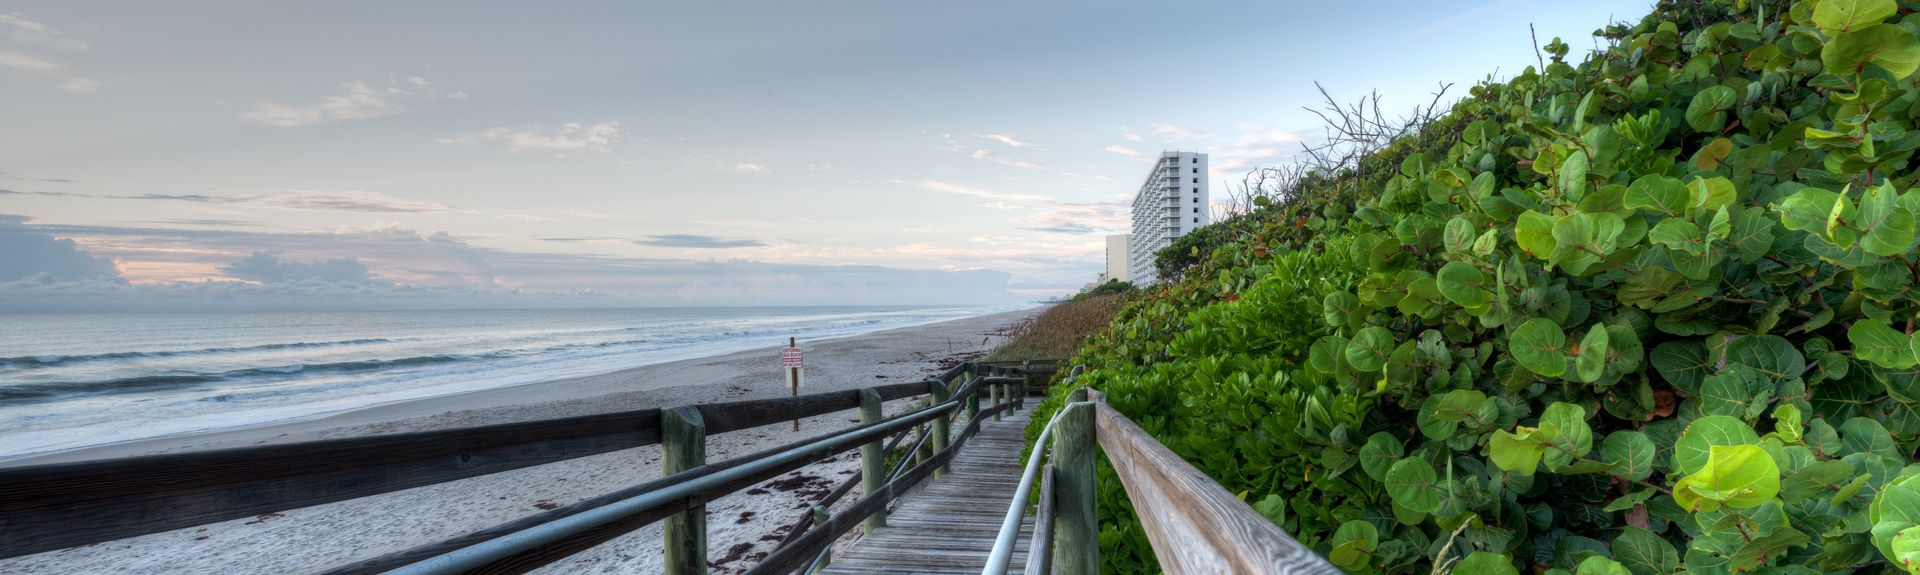 Melbourne Beach, Florida, United States